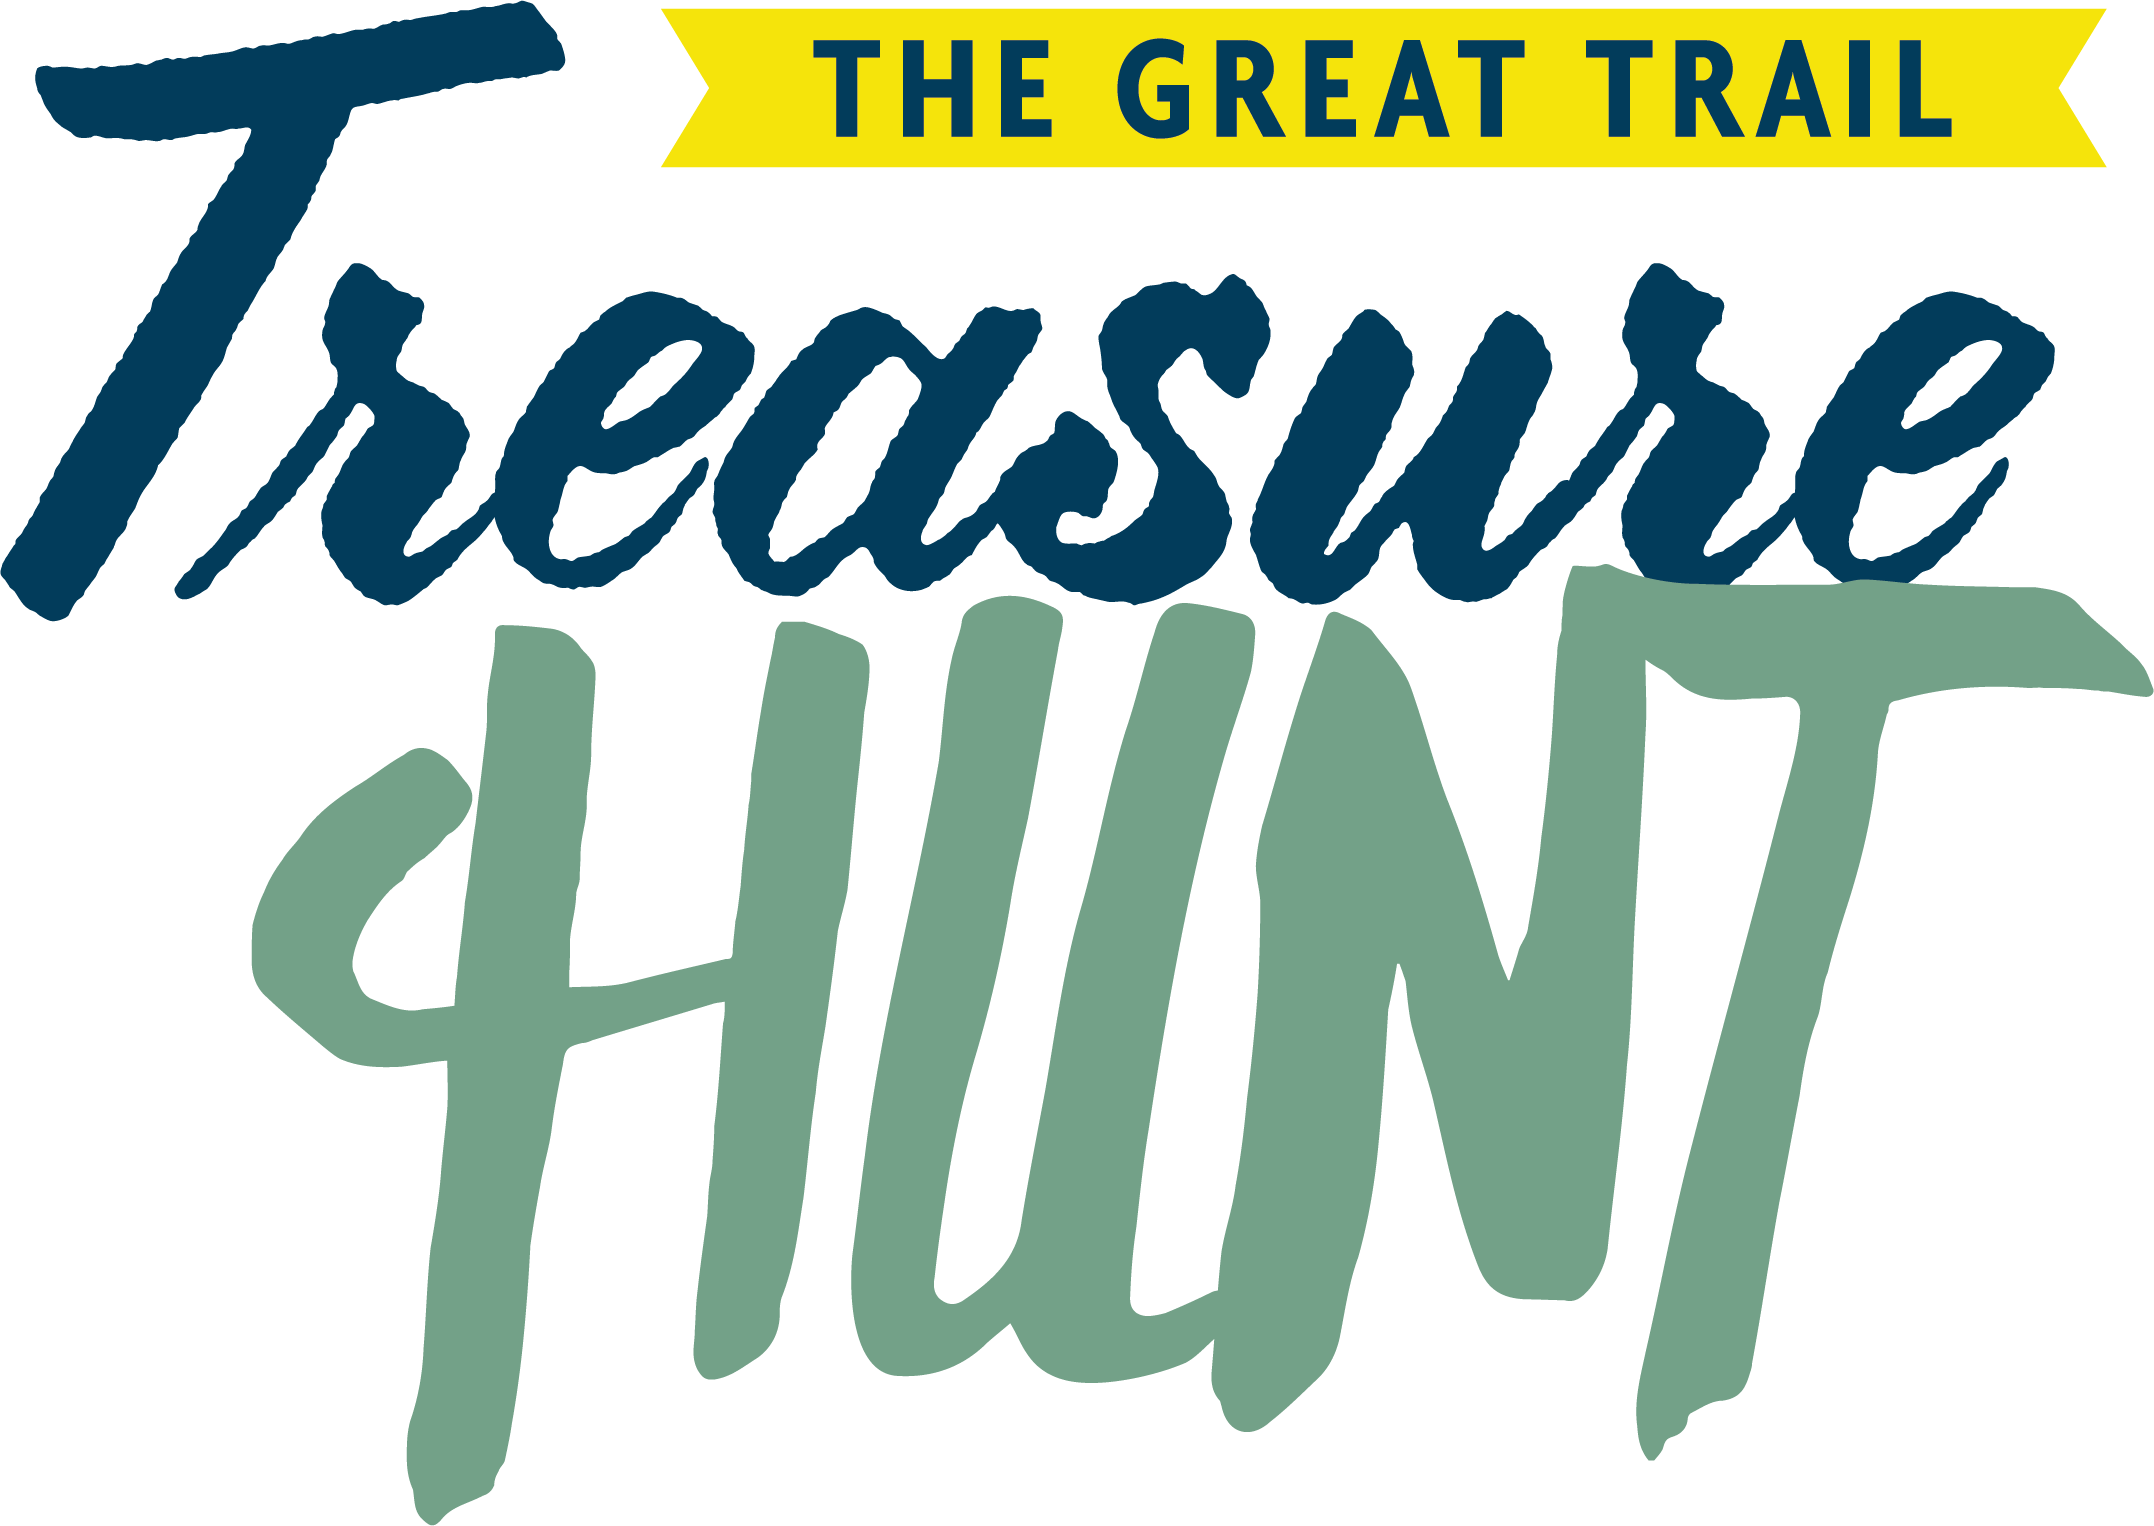 The Great Trail Treasure Hunt is back! | The Great Trail